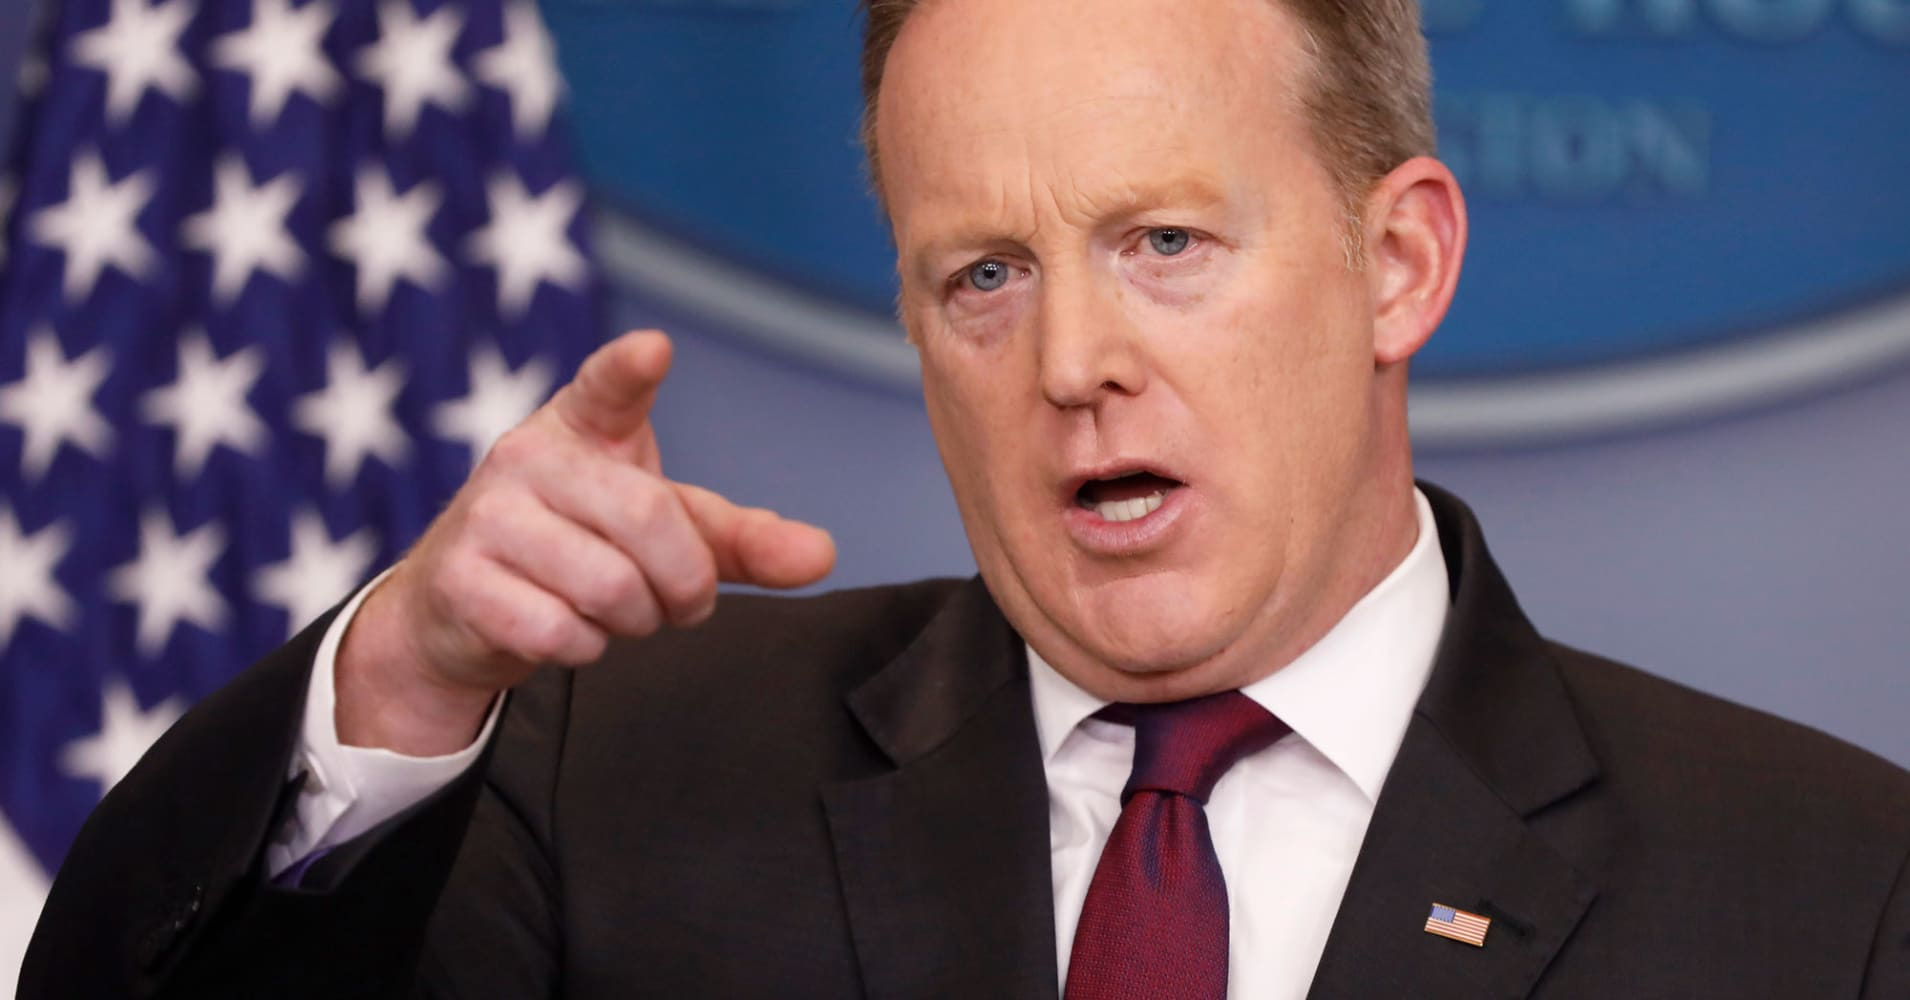 Watch: White House's Spicer gives briefing as Trump's address approaches